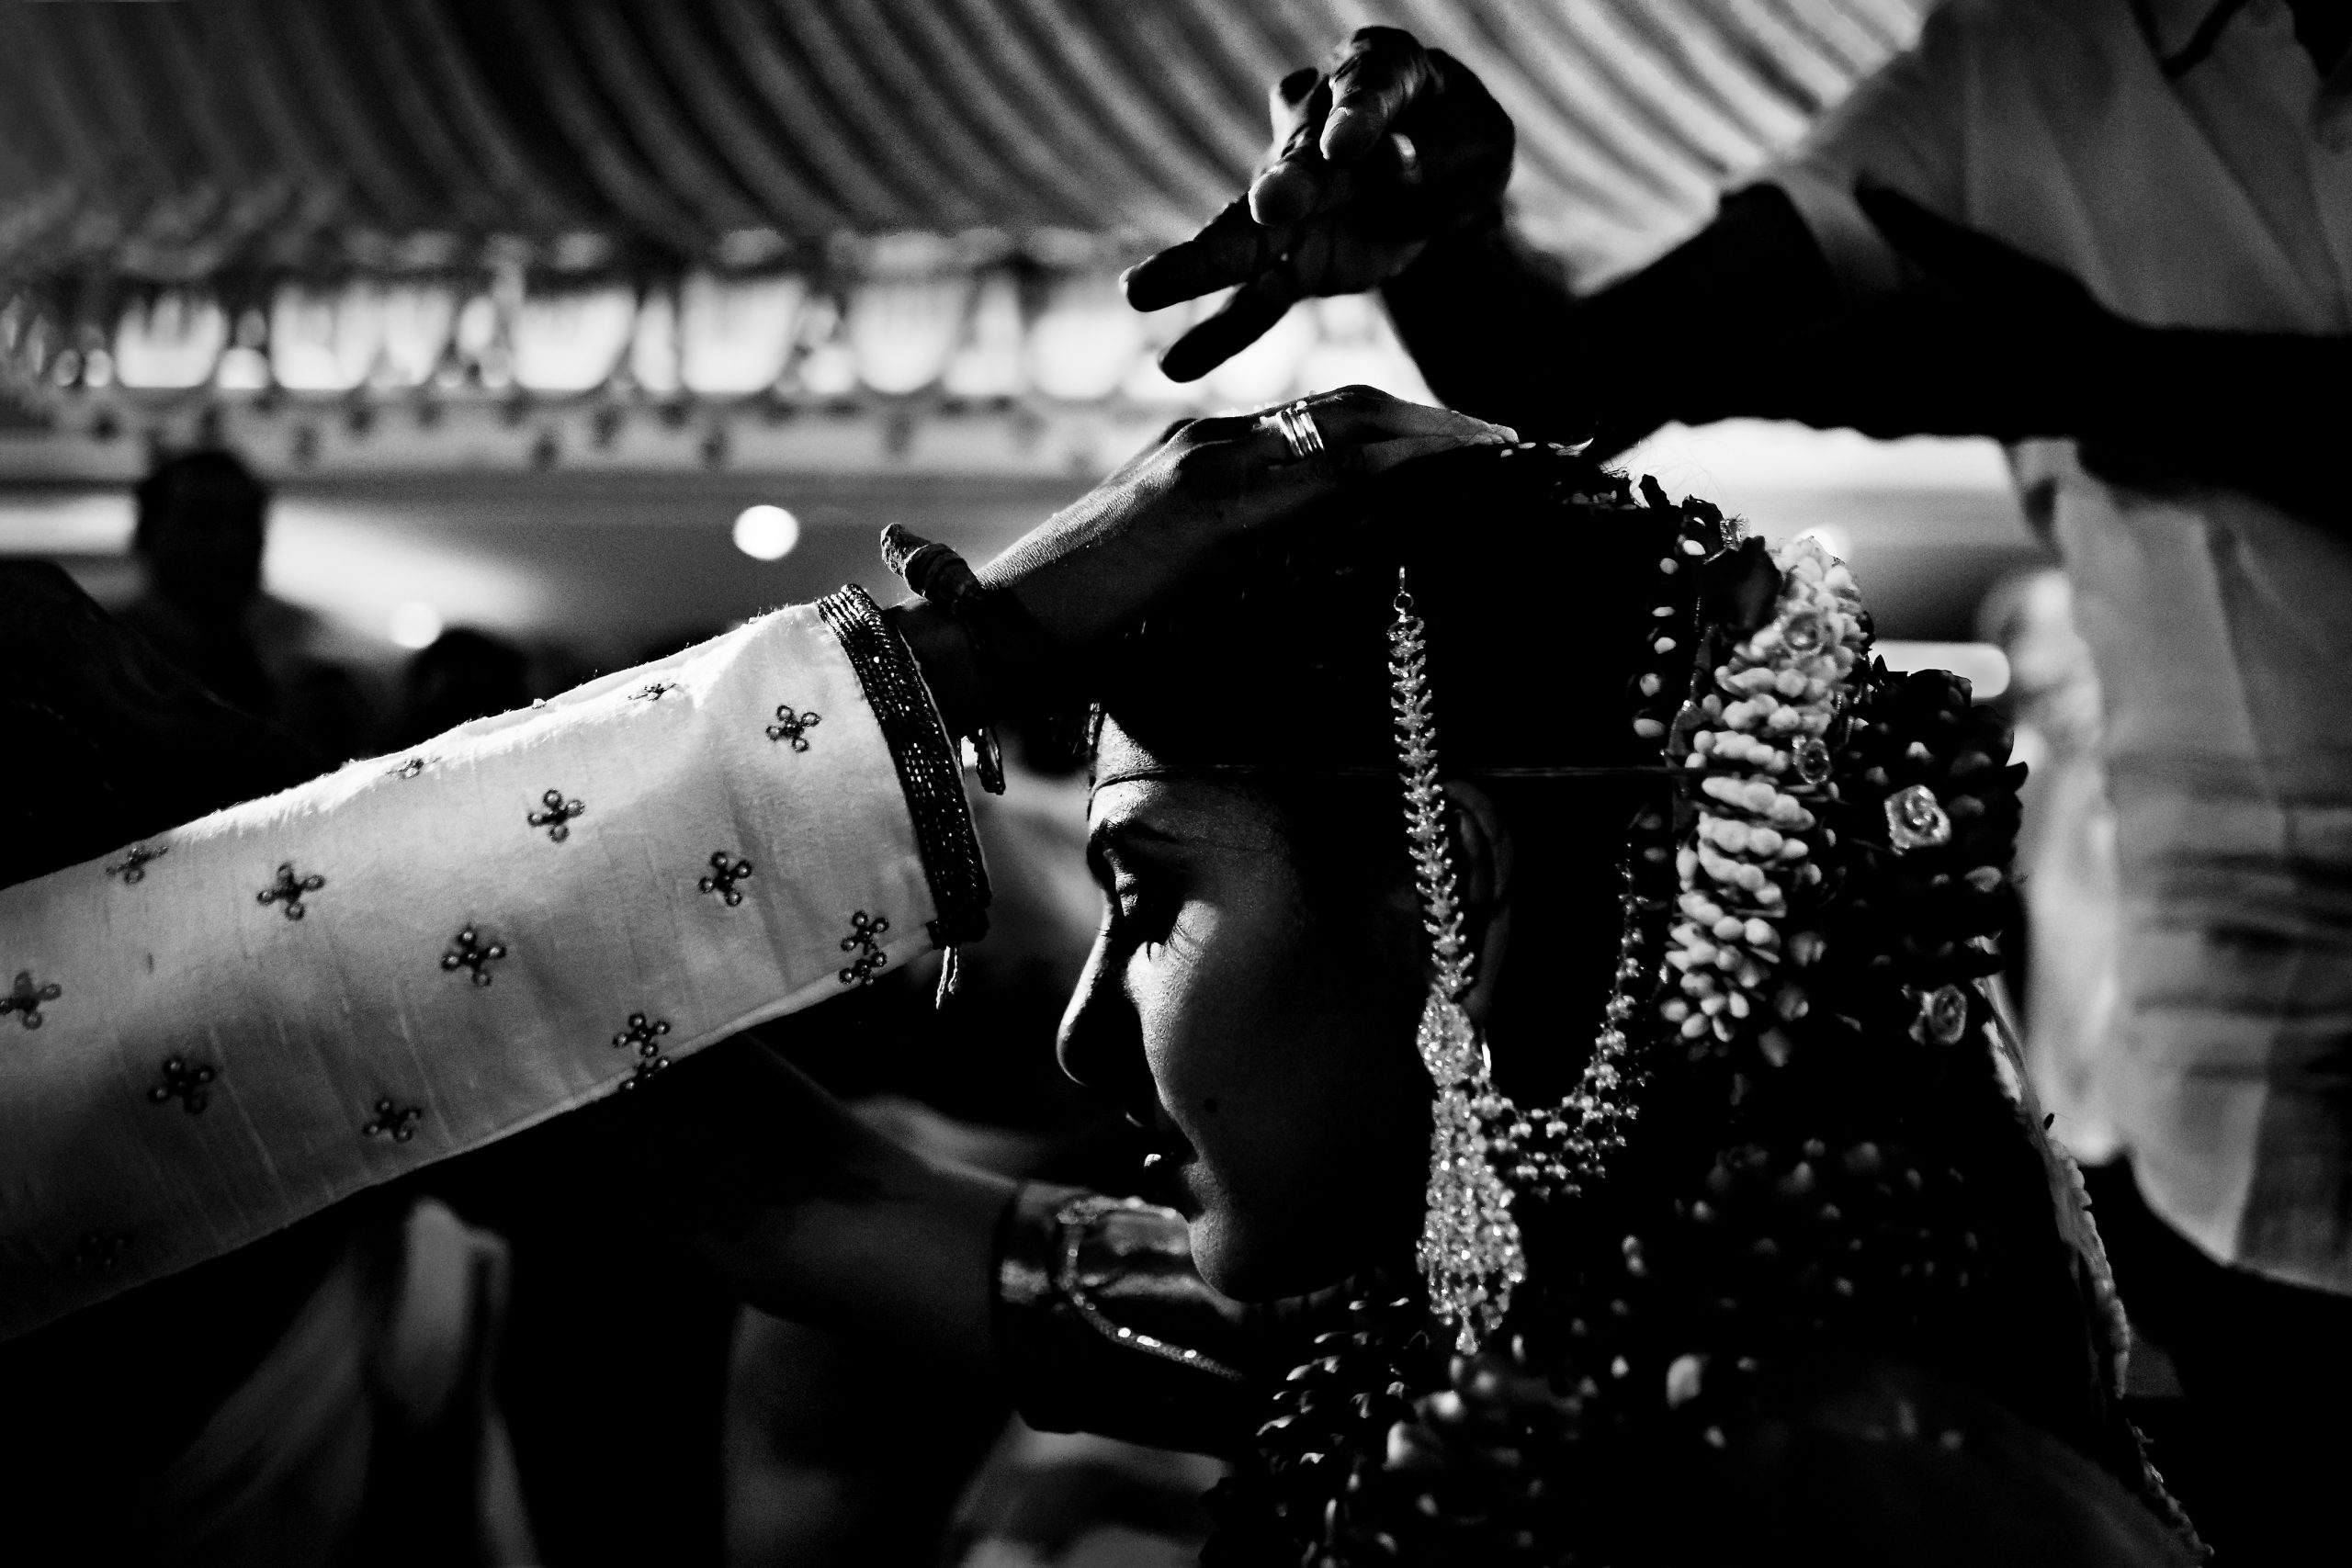 Groom touches the head of the bride during Indian wedding ceremony